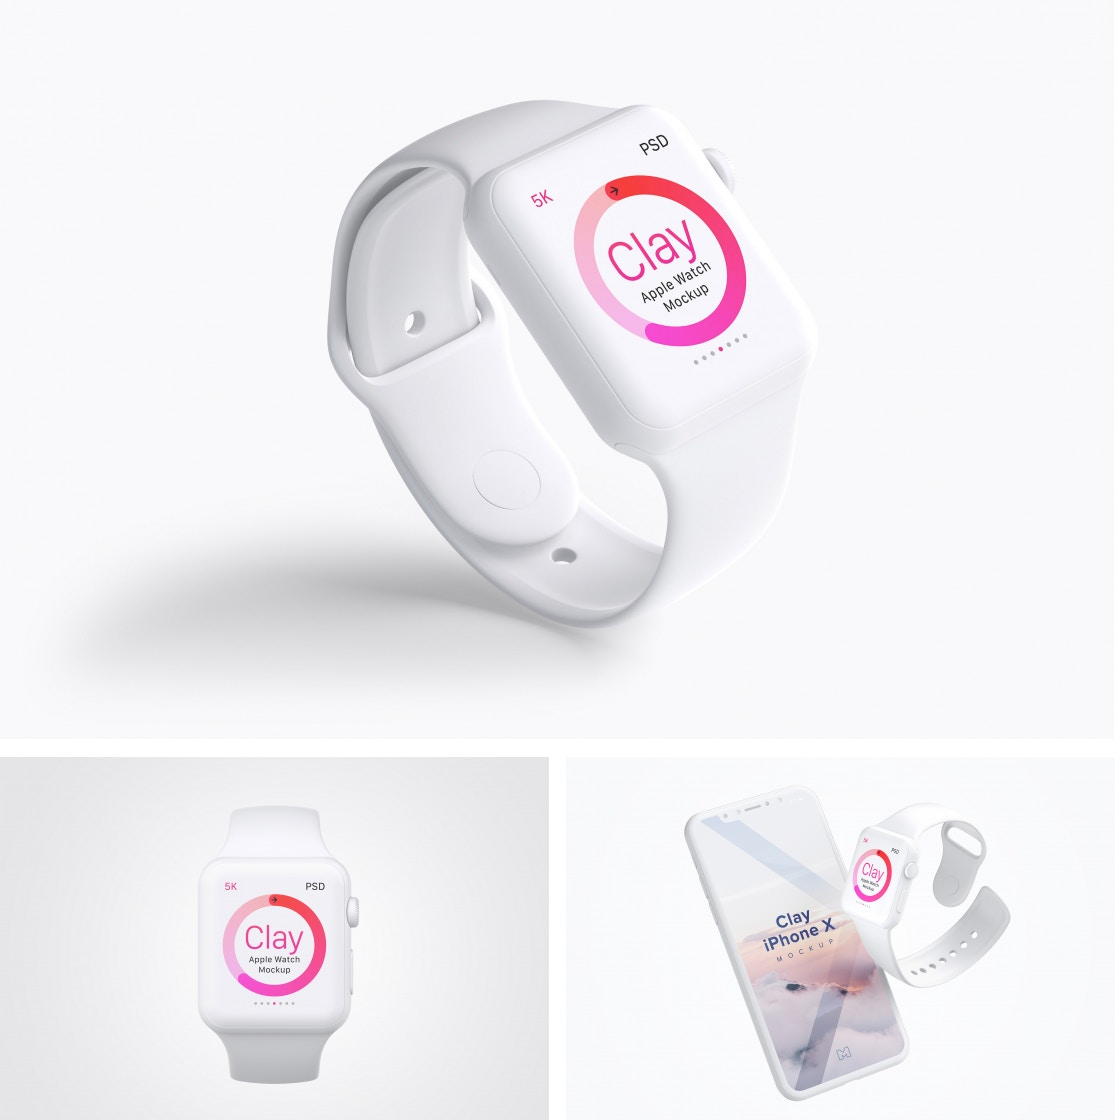 Clay Apple Watch Mockups Poster